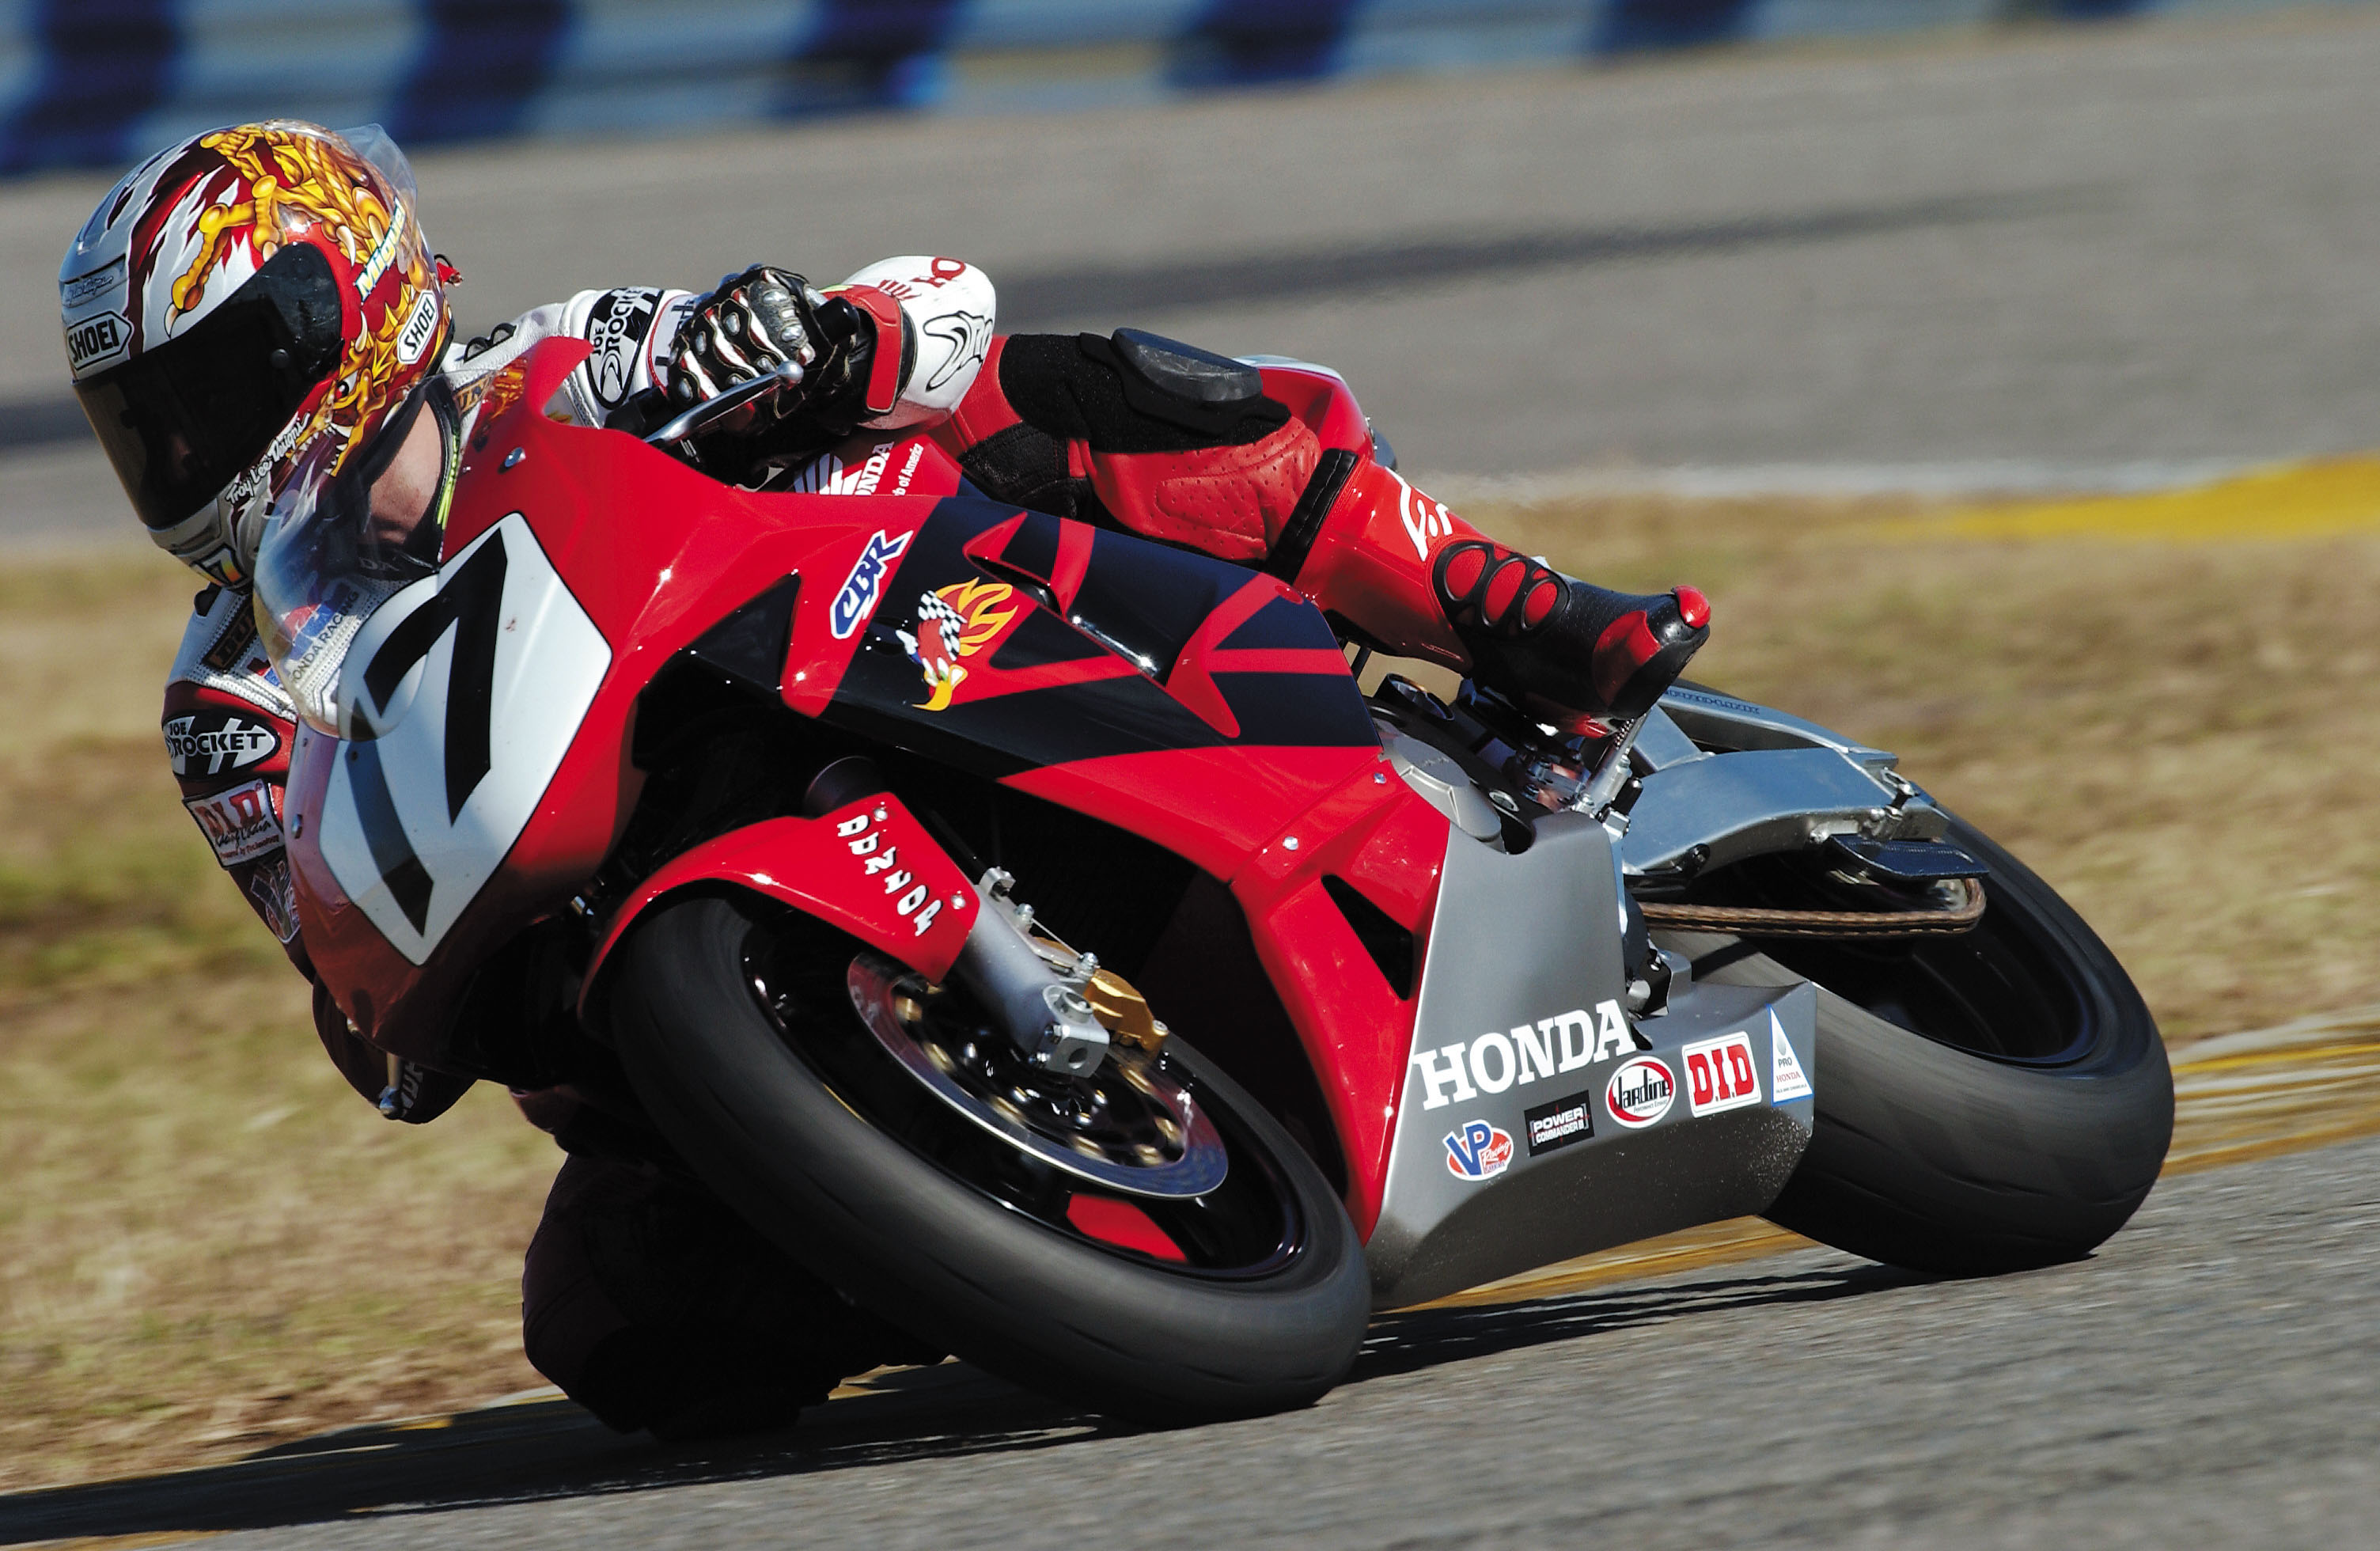 Is The 600 Cc Race Replica Doomed To Extinction